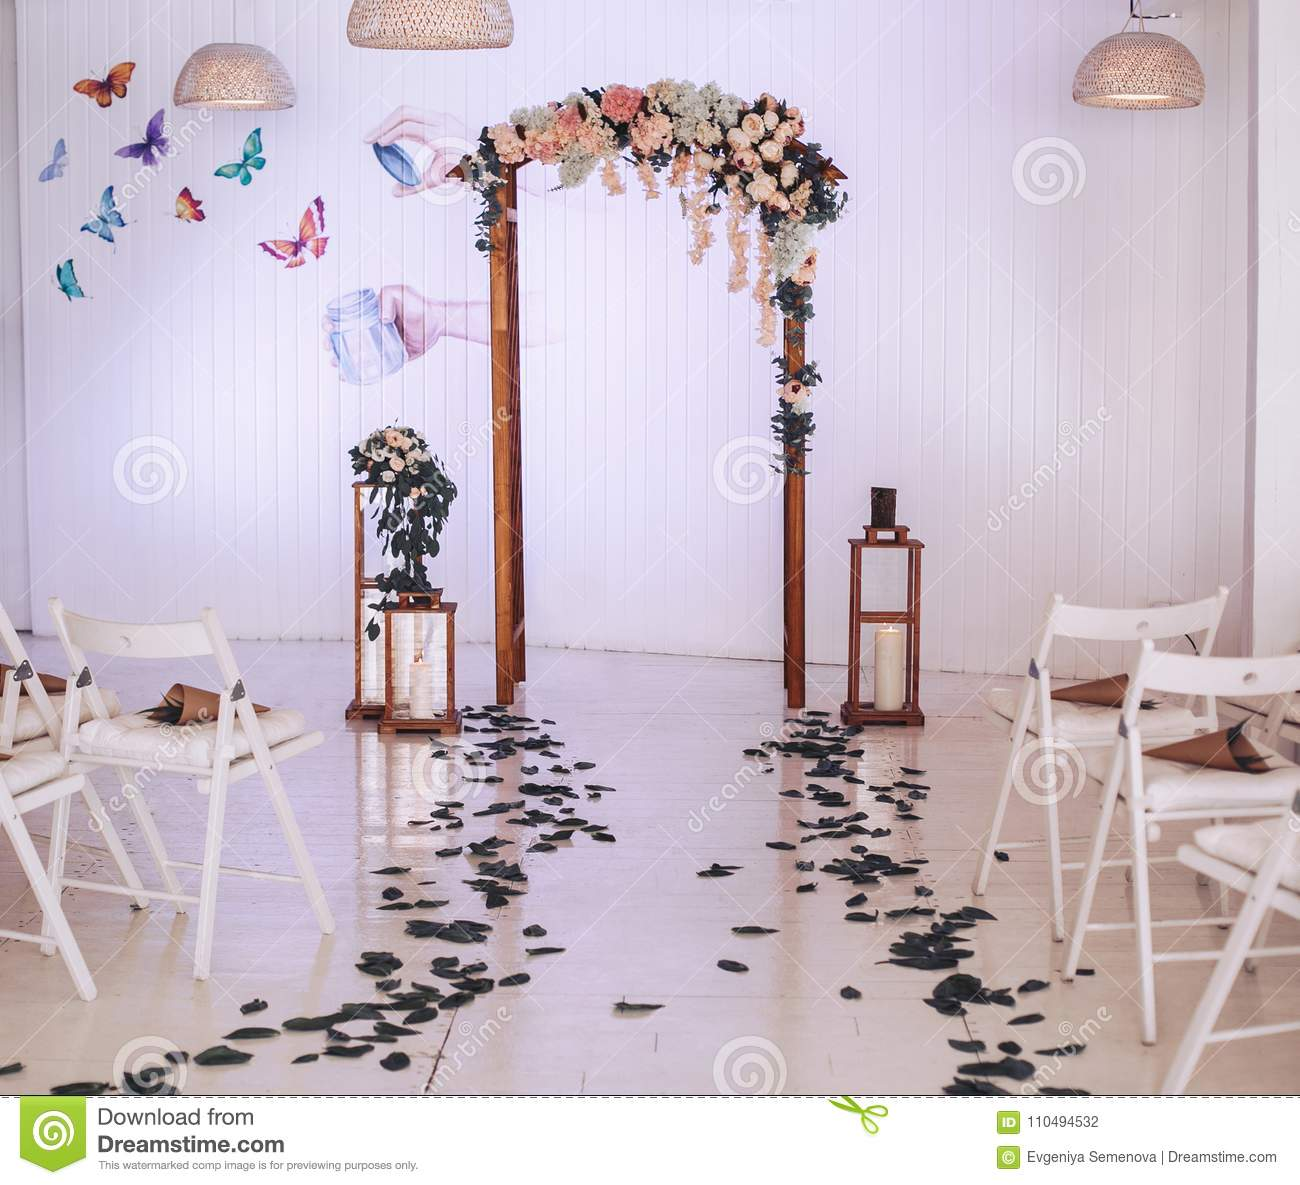 Wedding Arch Decorated With Flowers Large Candlesticks With Candles